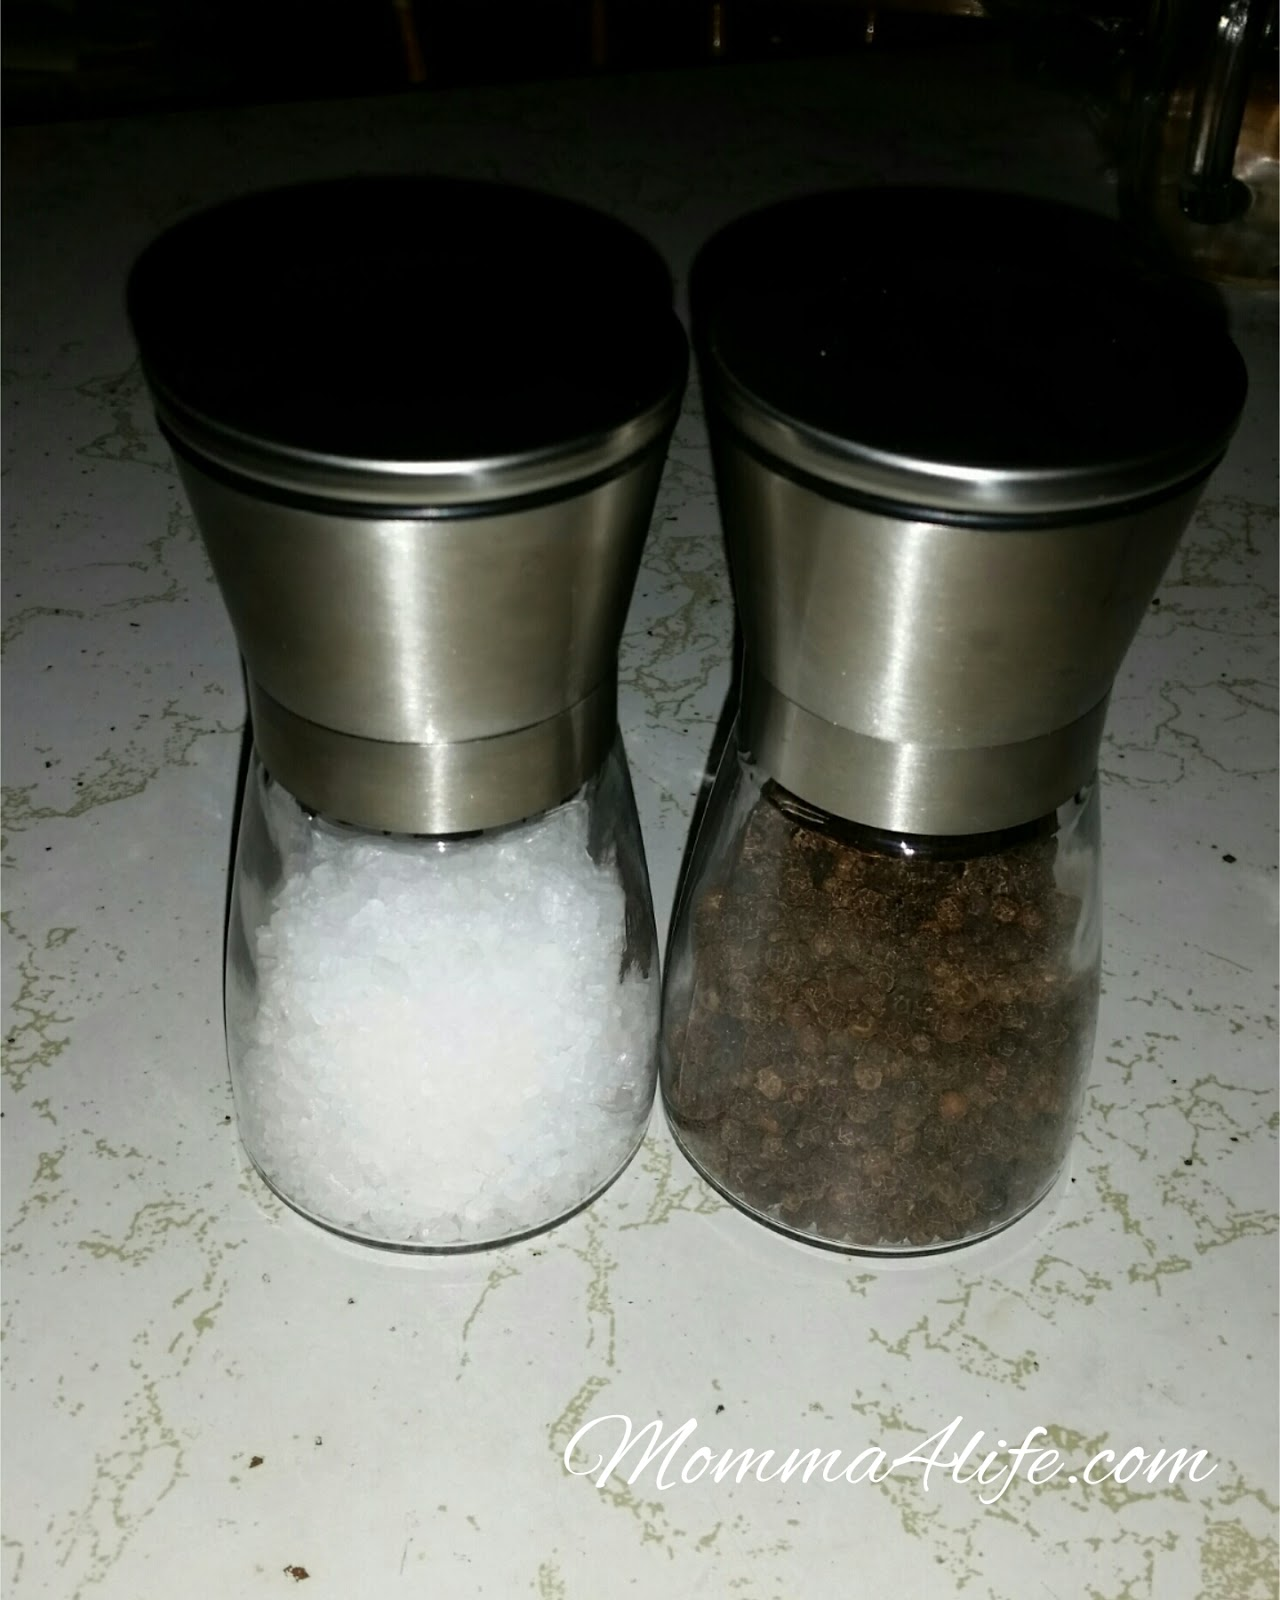 Unique Salt And Pepper Grinders Momma4life Salt And Pepper Grinder Set Review